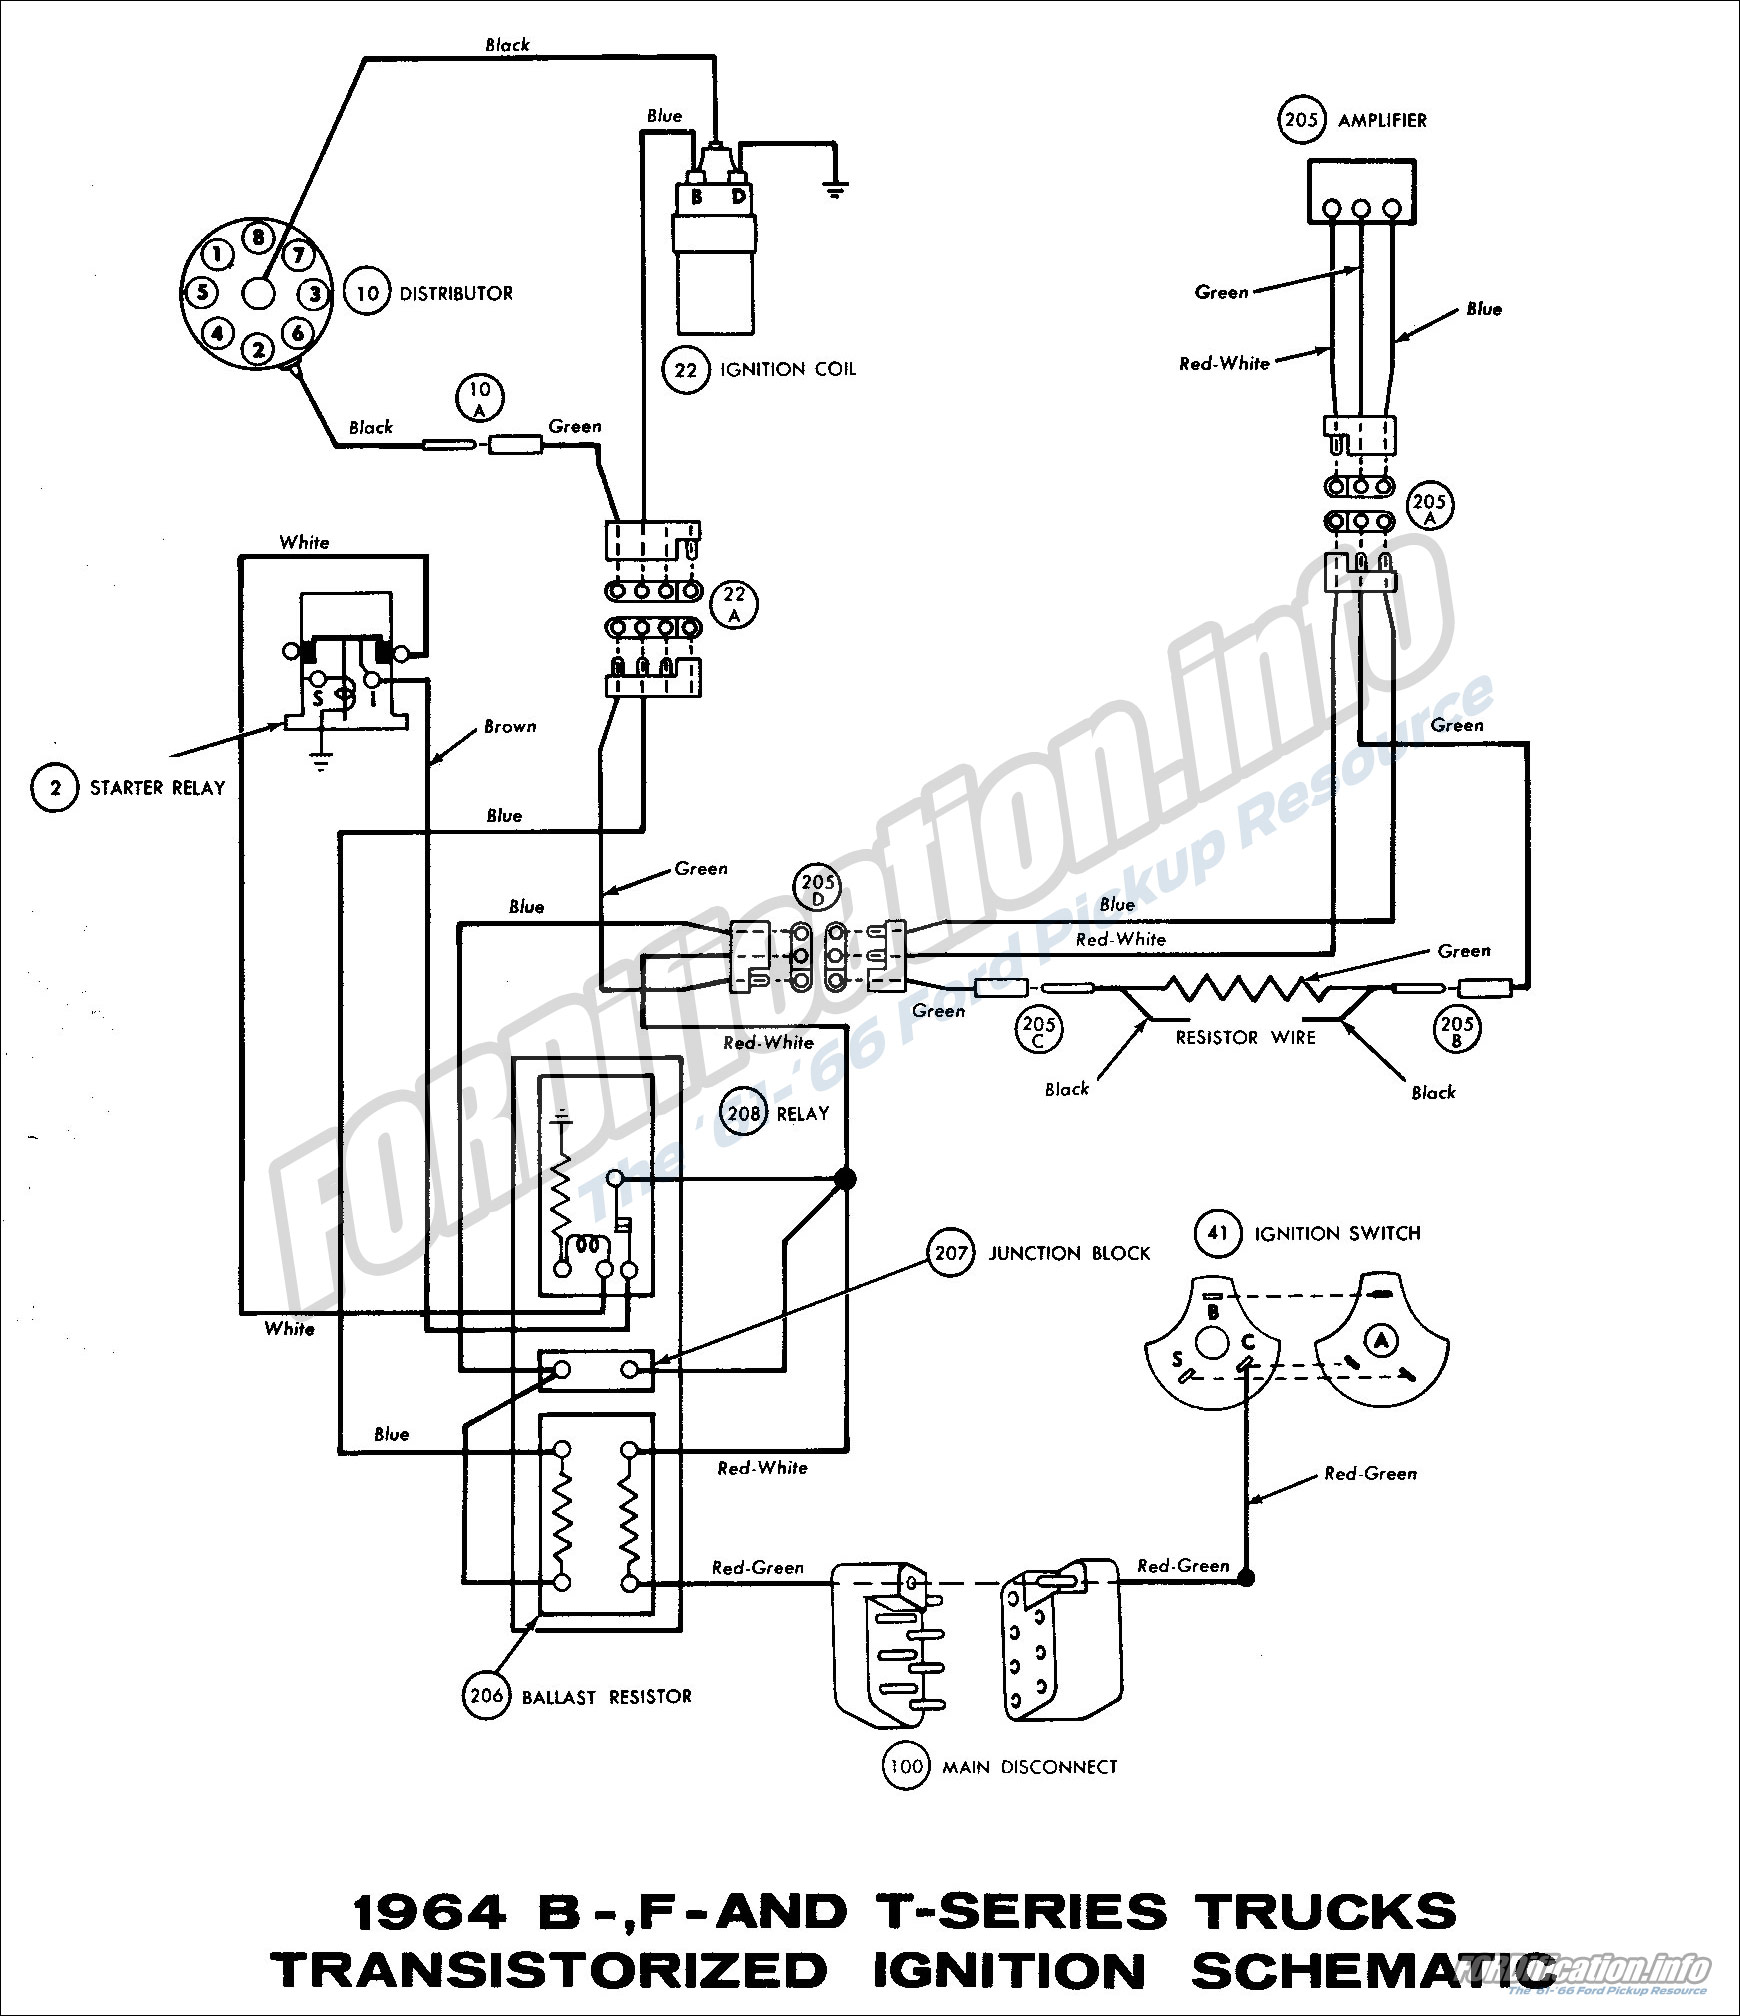 1964 ford truck wiring diagrams fordification info the 61 66 rh  fordification info 1964 ford fairlane wiring diagram 1964 ford falcon  wiring diagram